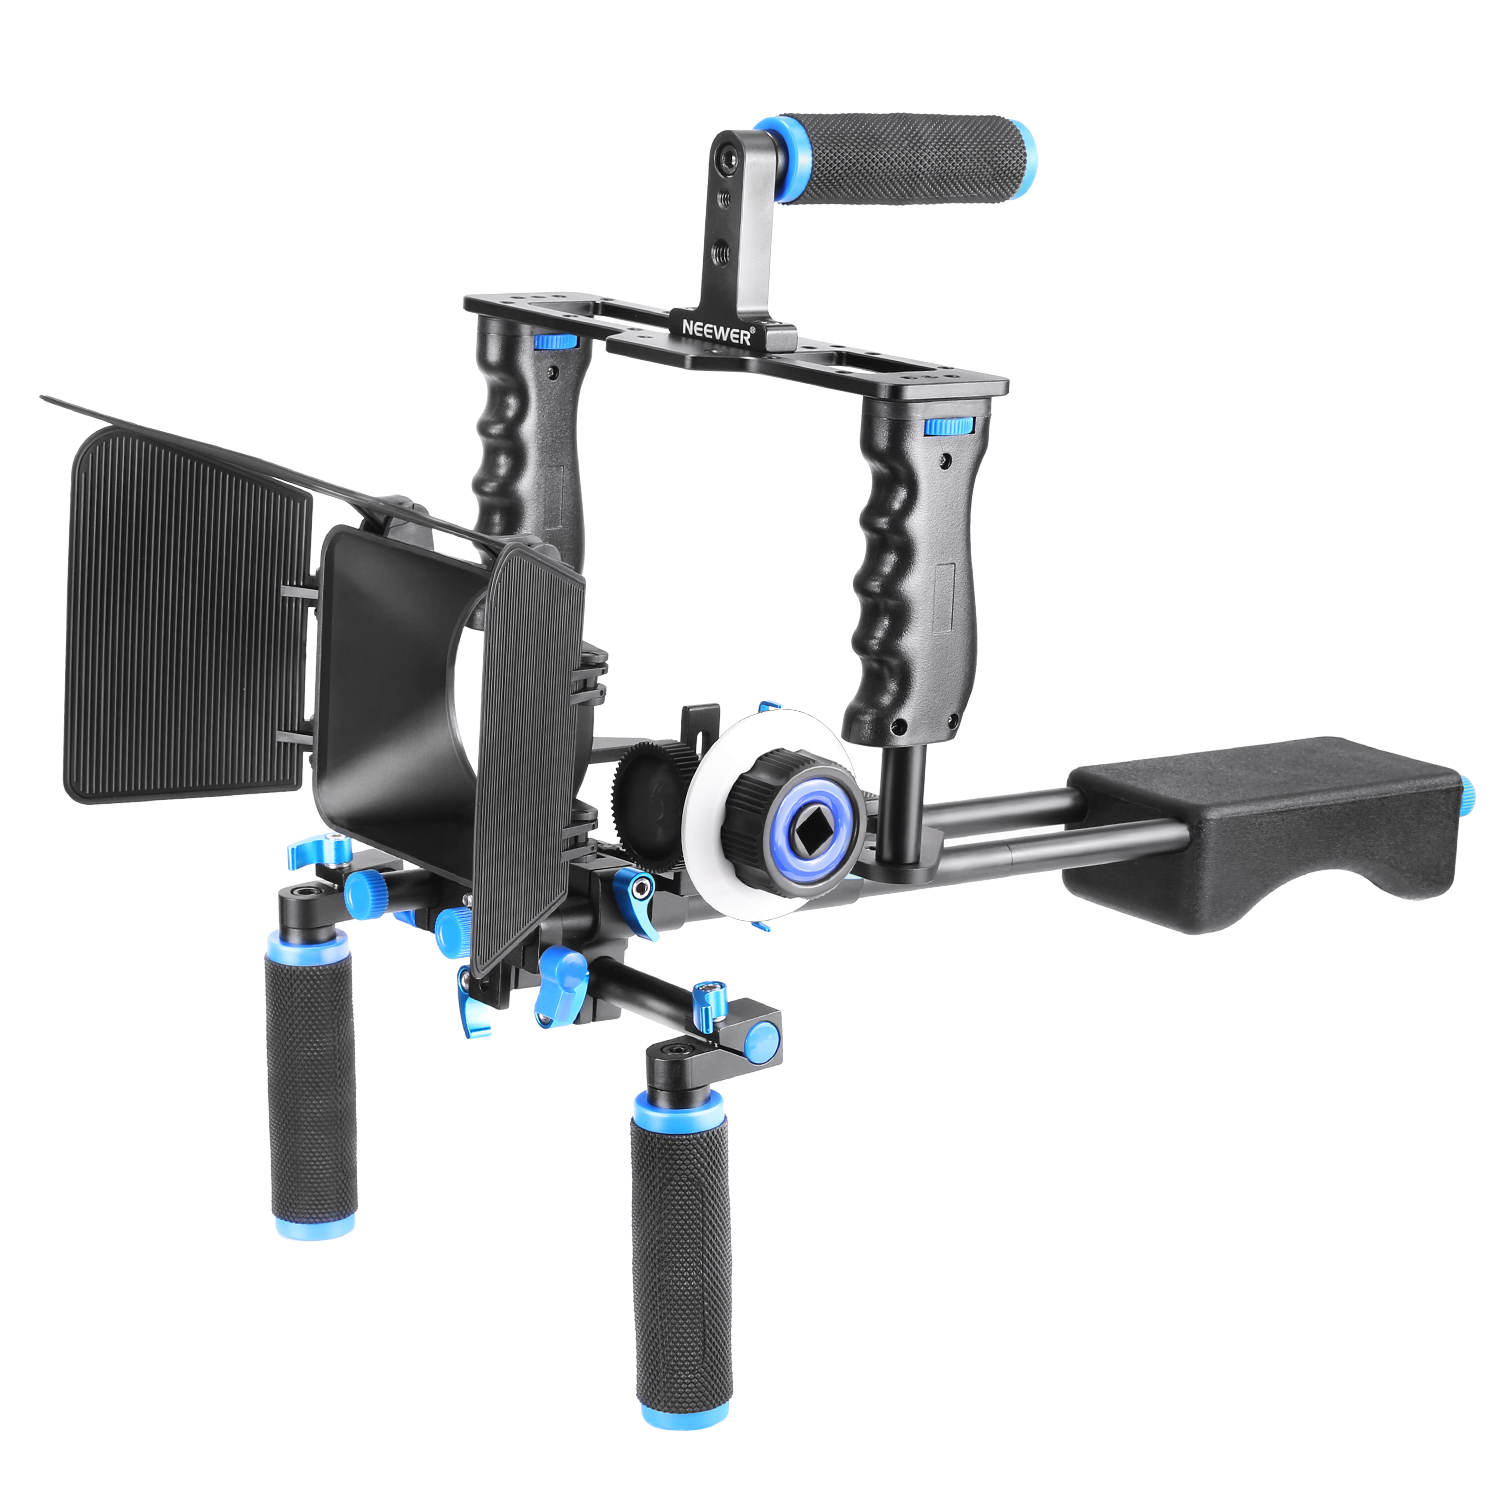 Neewer Aluminum Film Movie Kit System Rig for Canon/Nikon/Pentax/Sony and other DSLR Cameras Image